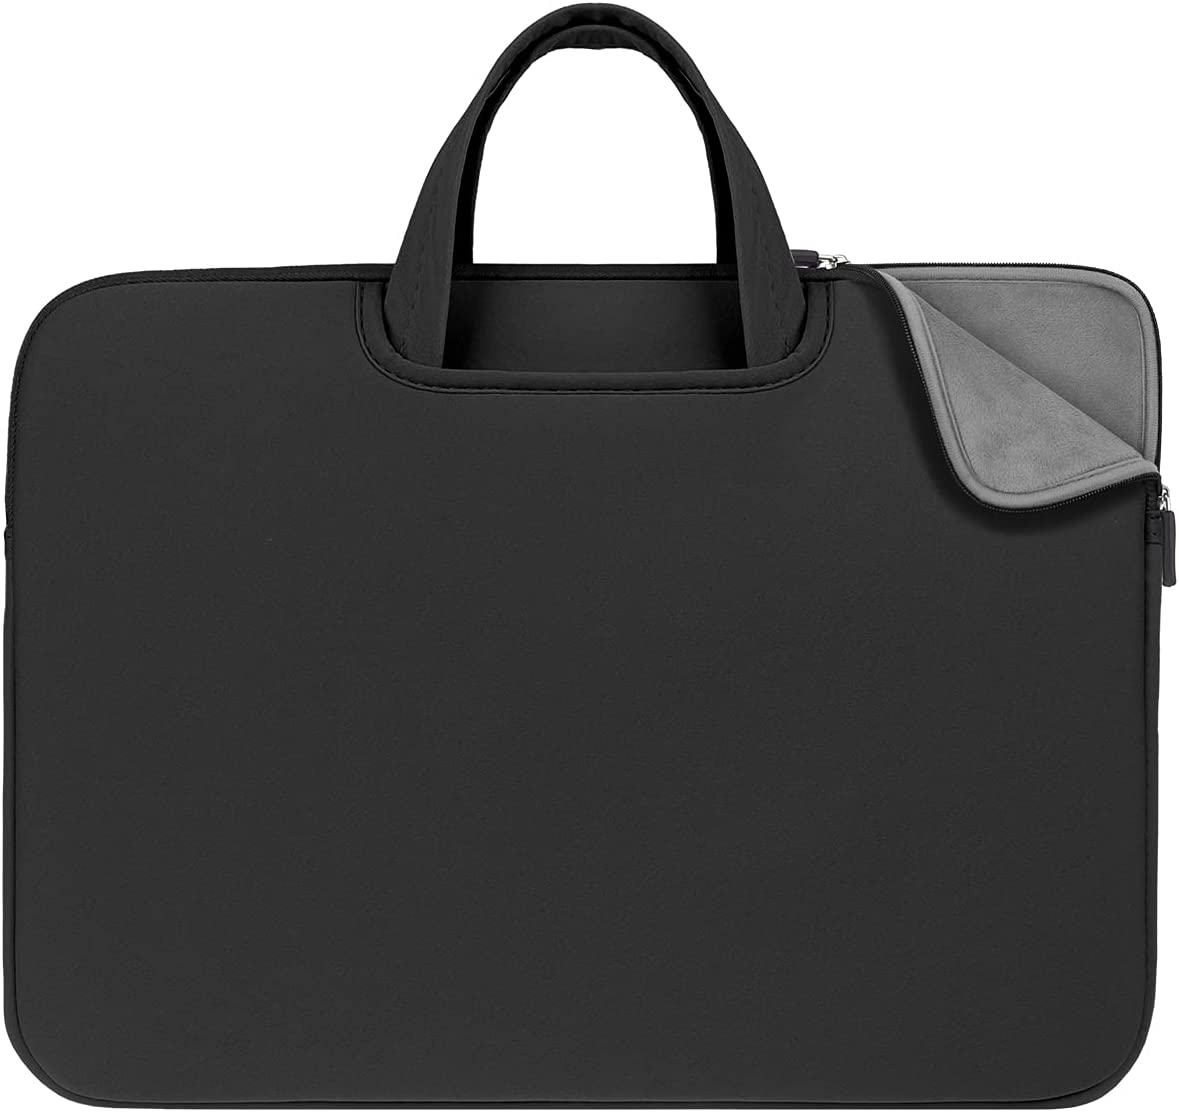 RAINYEAR Laptop Sleeve Case 15 Inch Limited time cheap sale Partial New product for 15